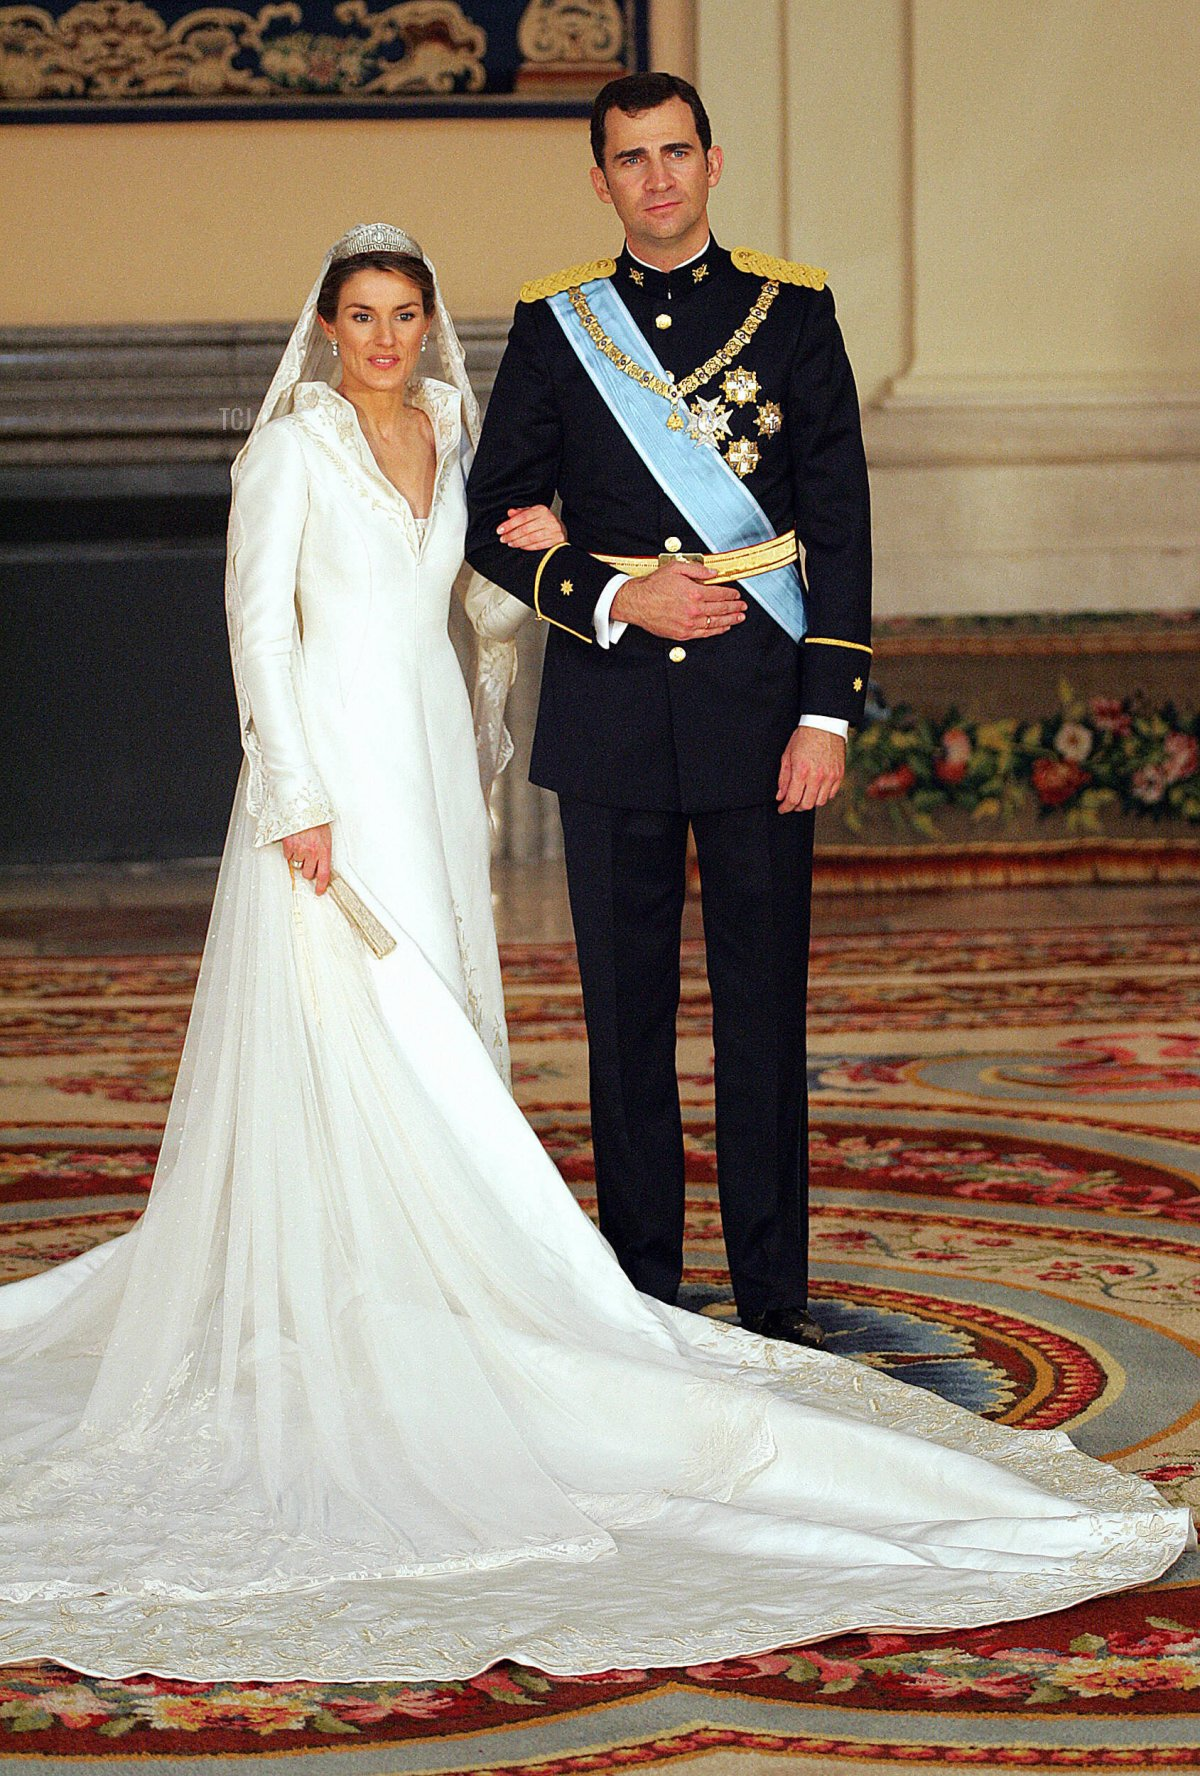 Spanish Crown Prince Felipe of Spain and his wife Princess of Asturias Letizia Ortiz pose inside the Royal Palace in Madrid 22 May 2004